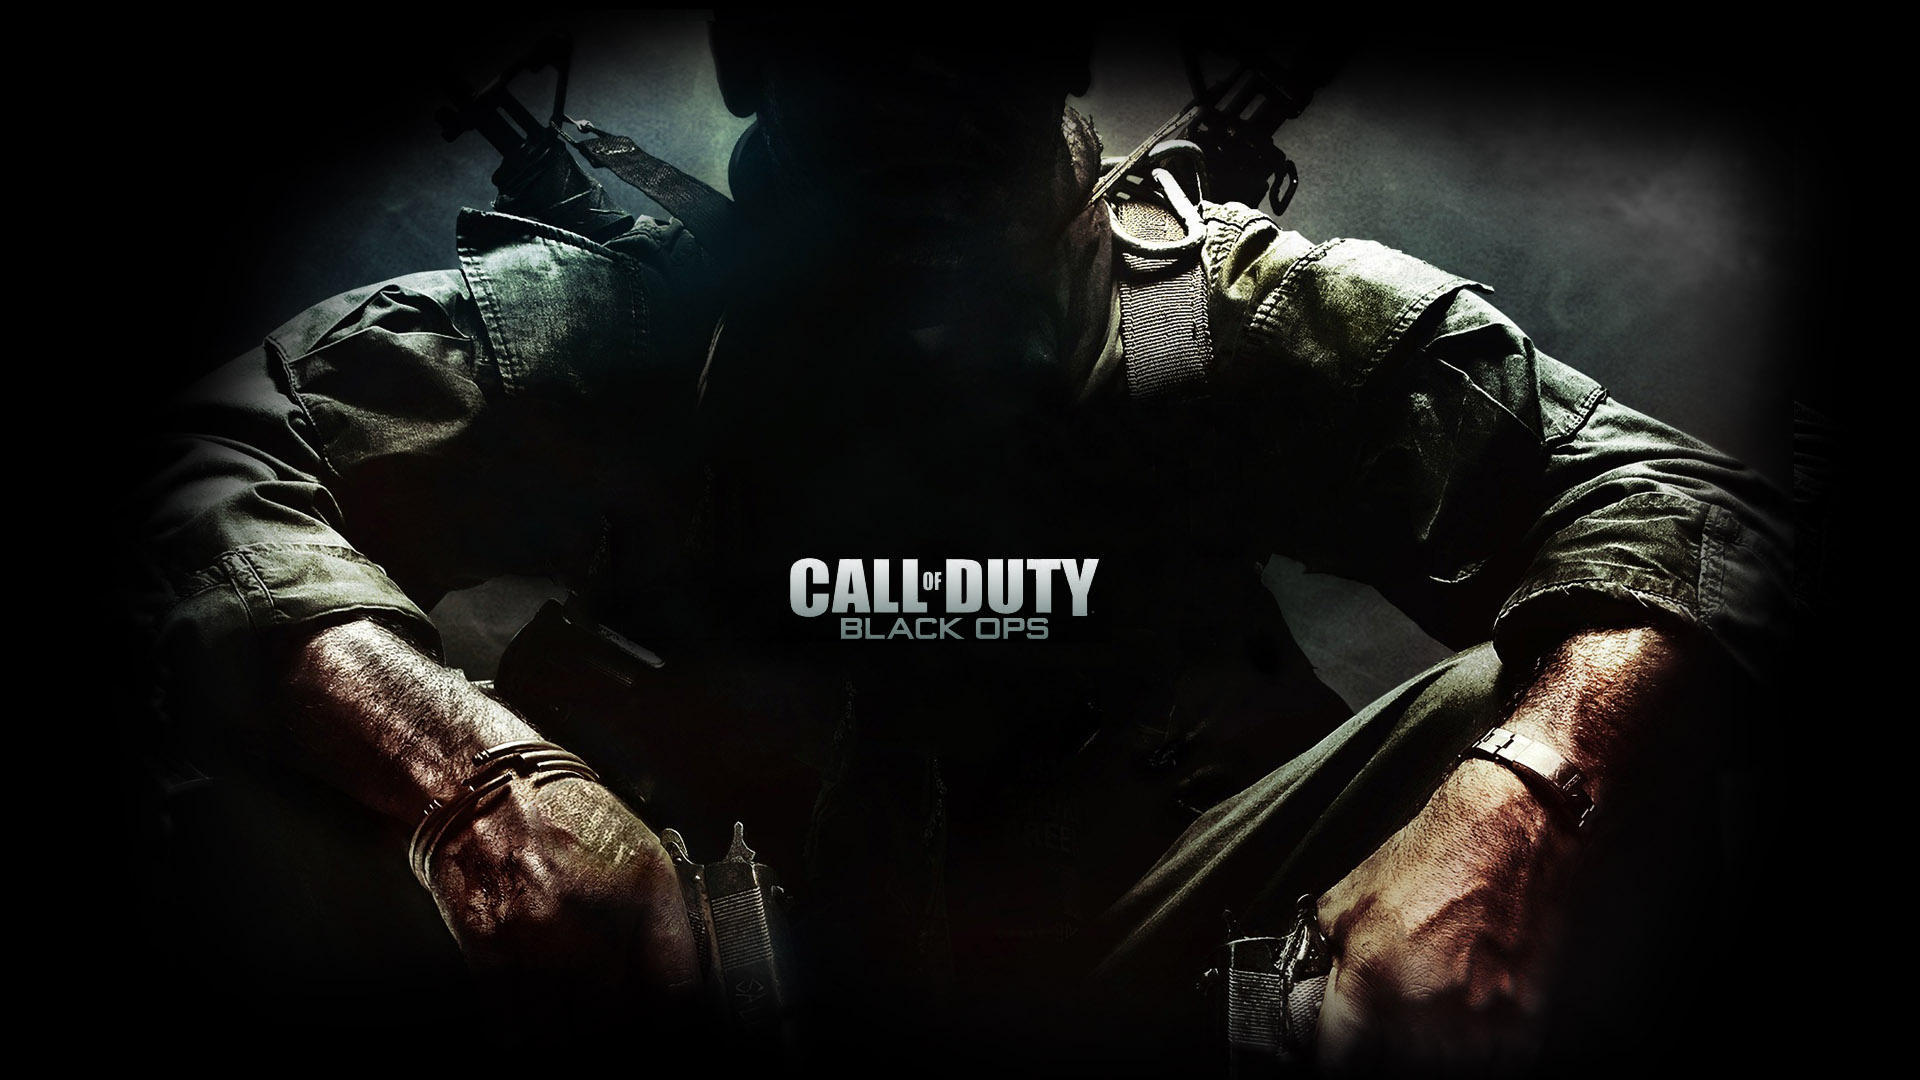 call-of-duty-black-ops-dark_1920x1080_355-hd.jpg